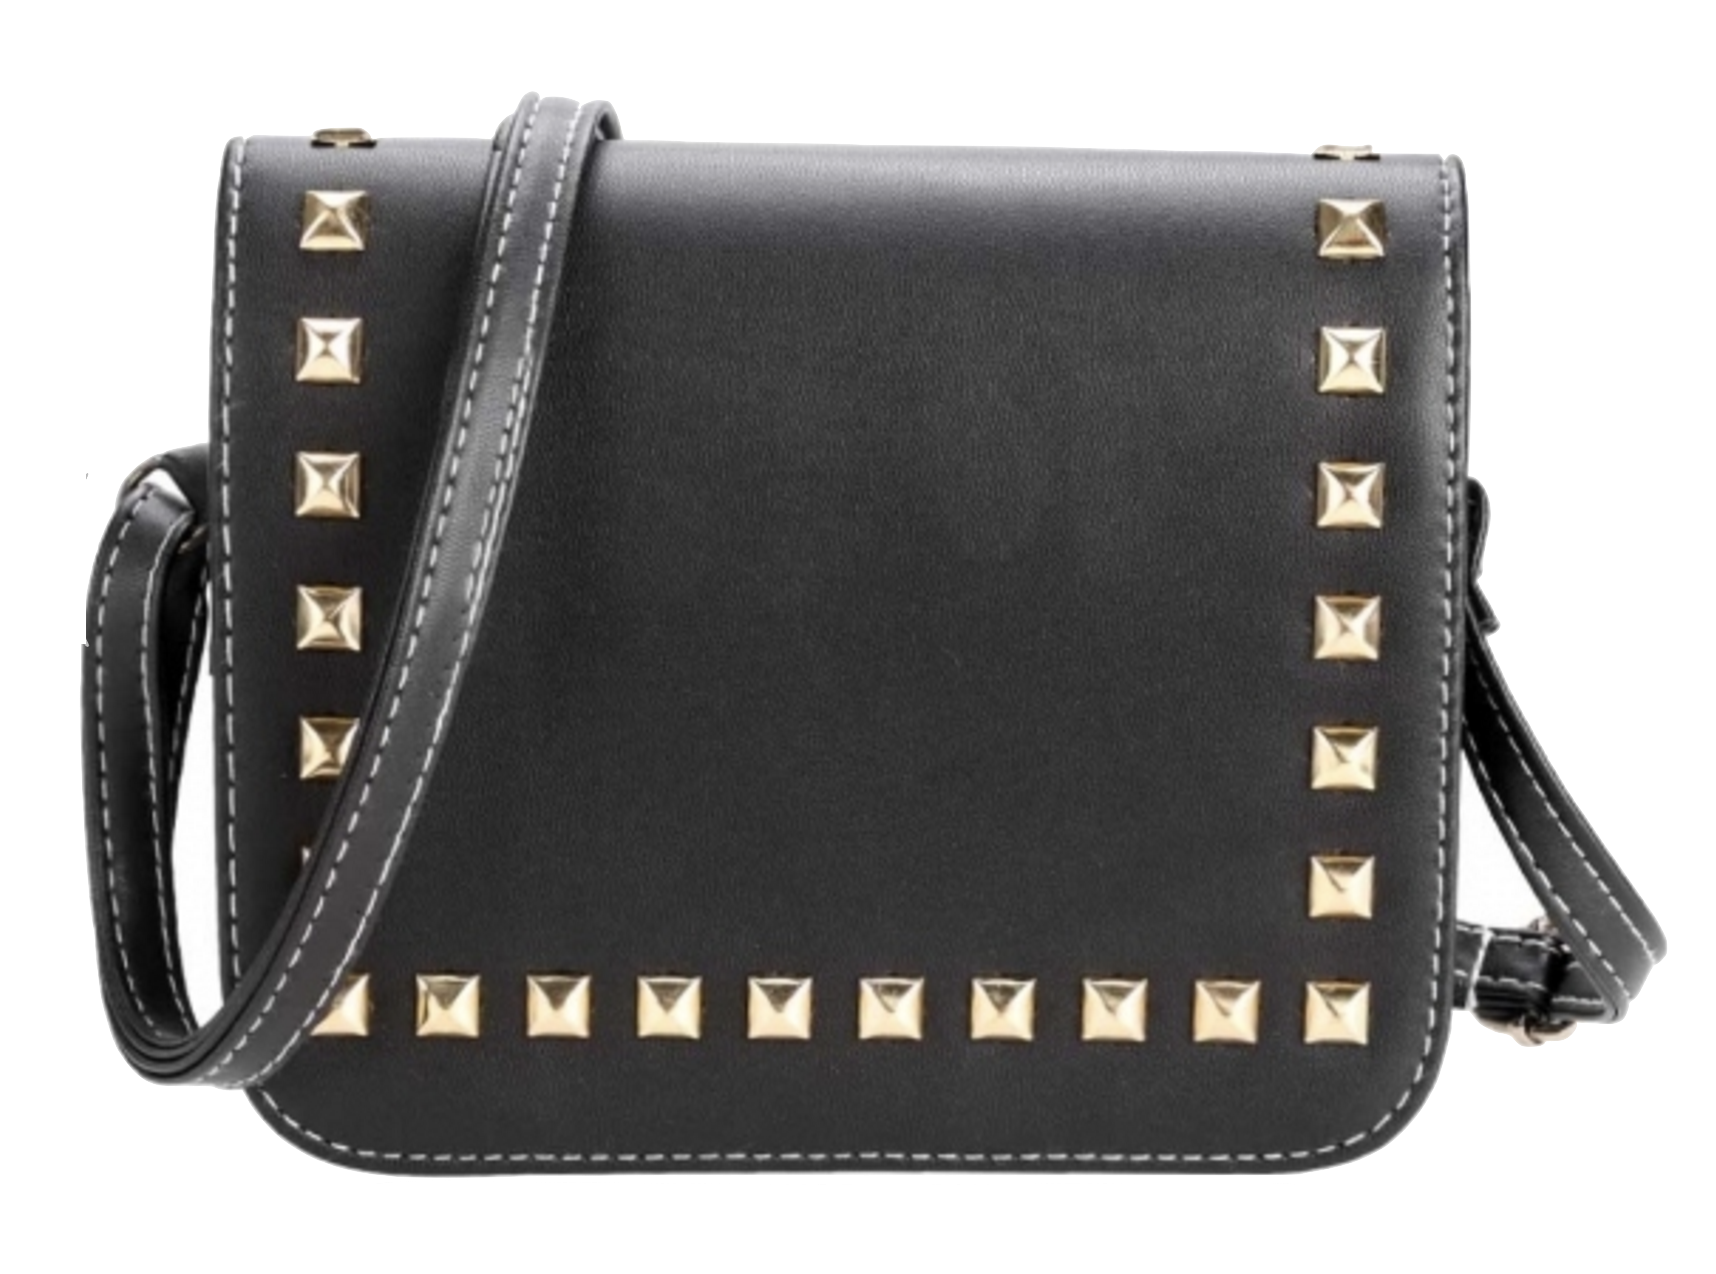 synthetic-leather-rivets-embellished-flap-shoulder-bag